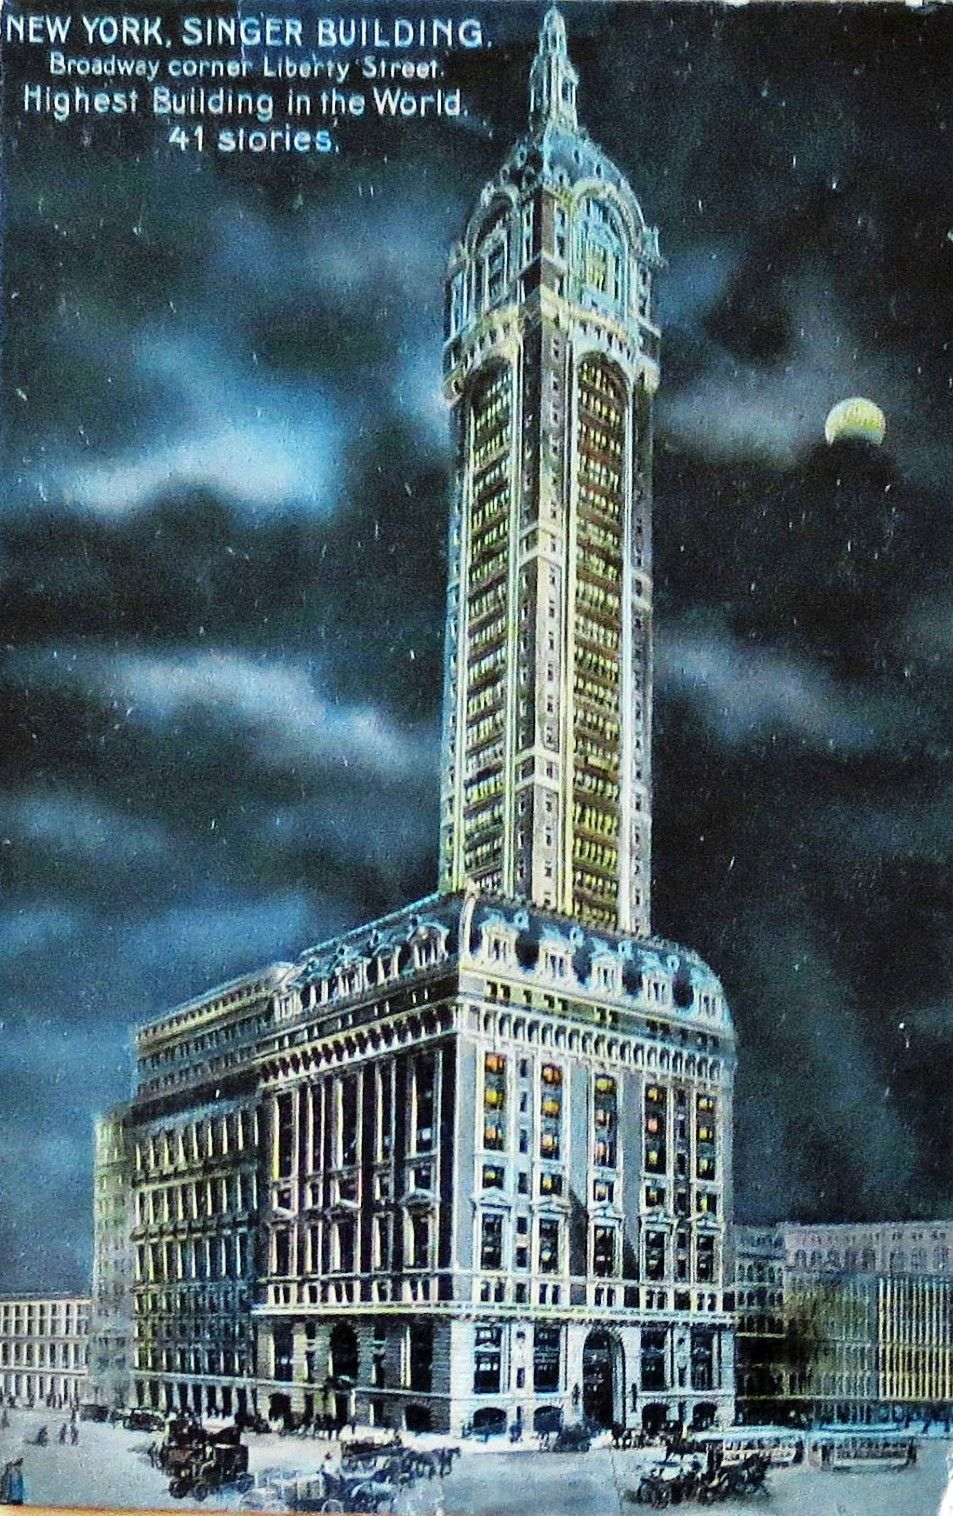 The Singer Building was the first in New York to be dramatically lit ...